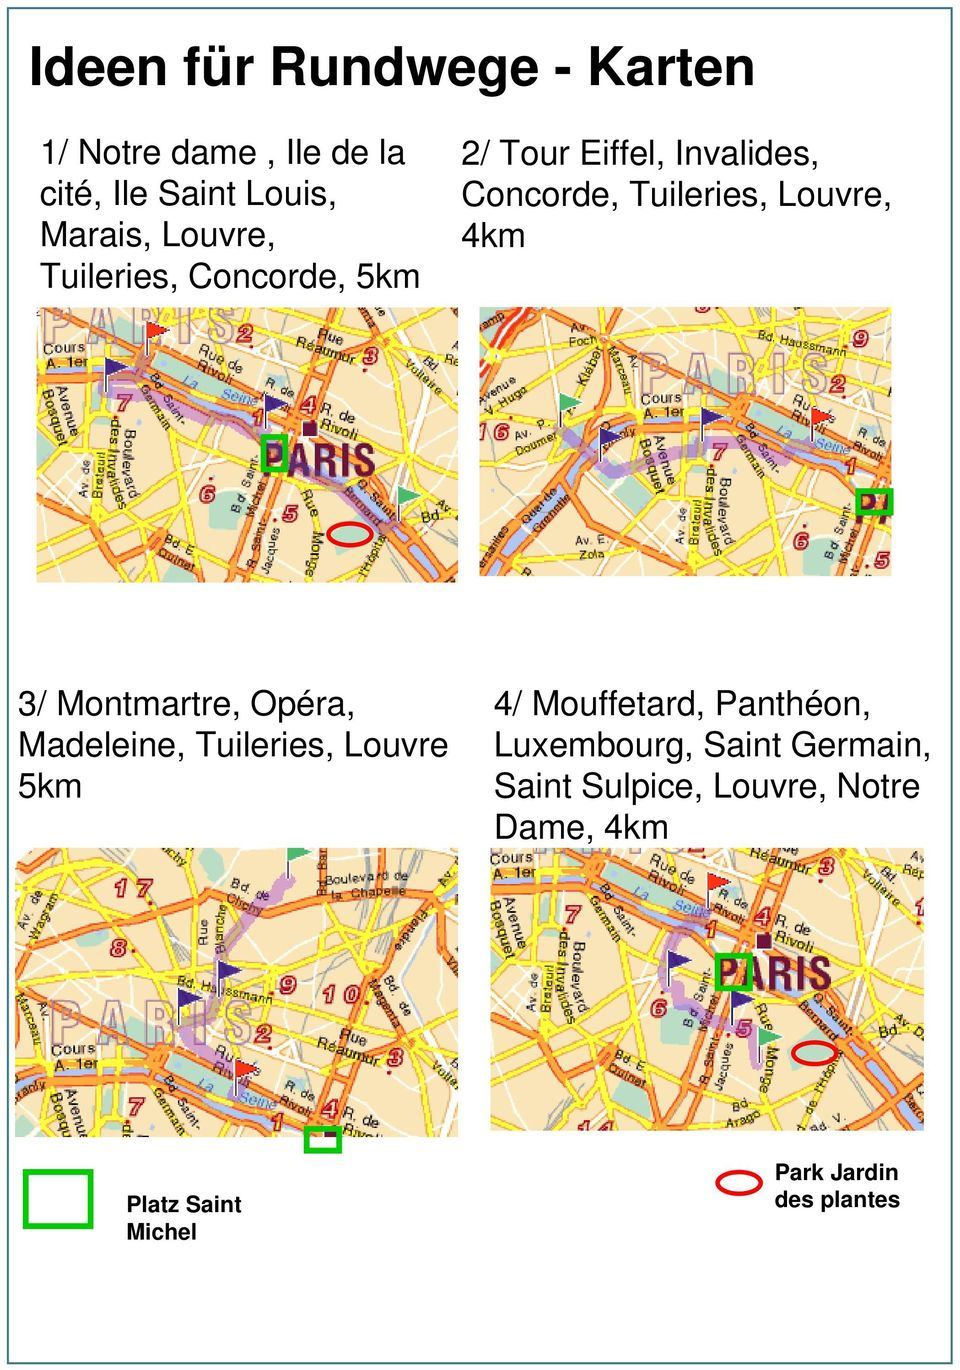 Montmartre, Opéra, Madeleine, Tuileries, Louvre 5km 4/ Mouffetard, Panthéon, Luxembourg,